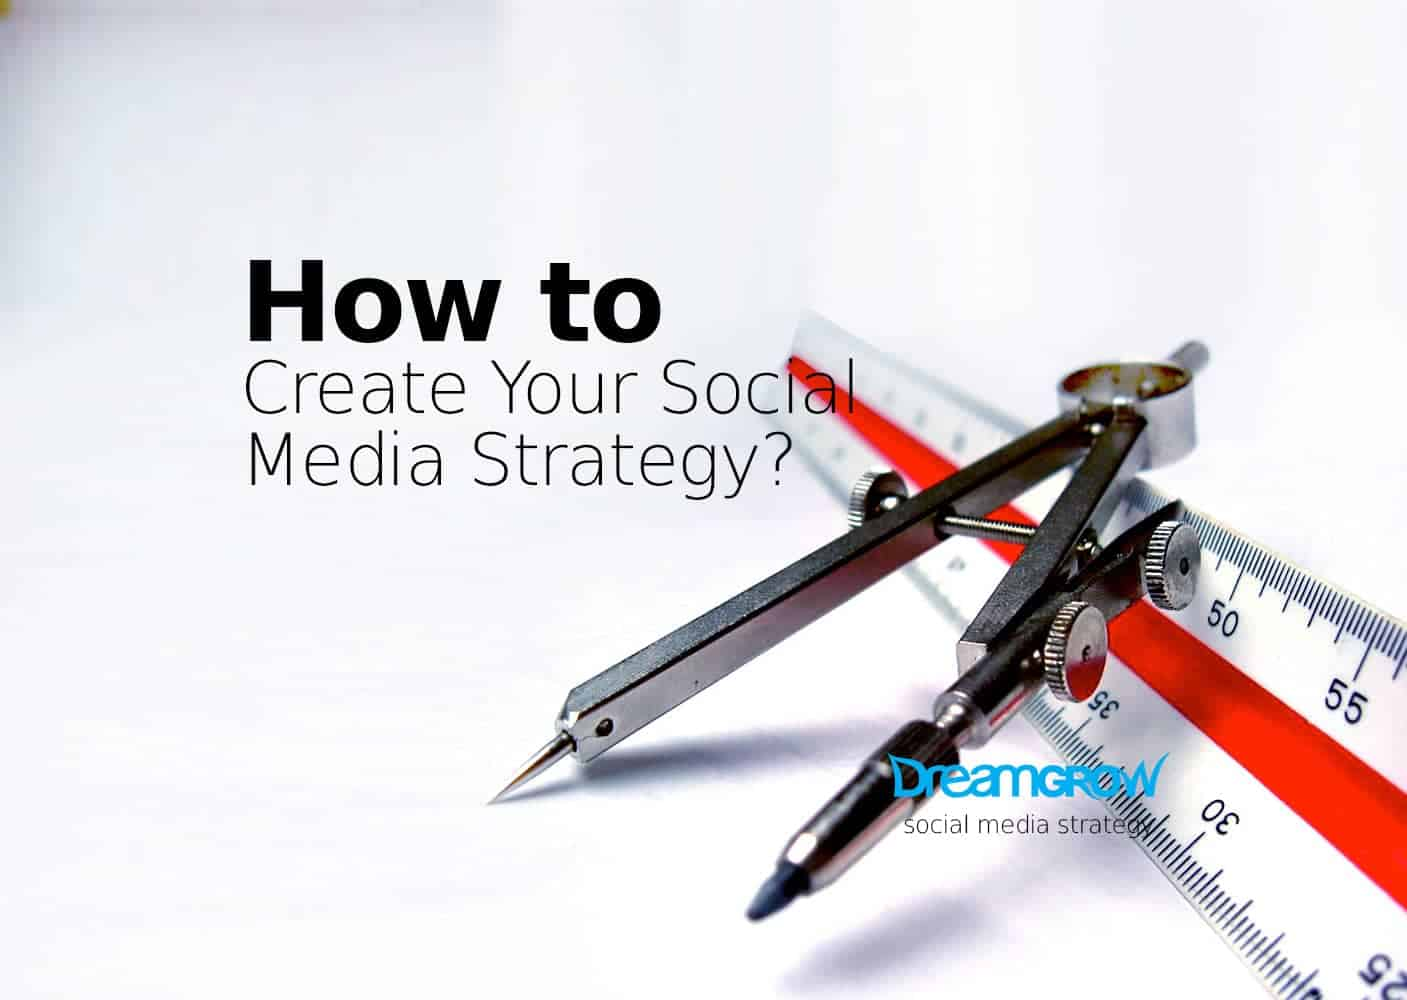 how-to-create-social-media-strategy.jpg